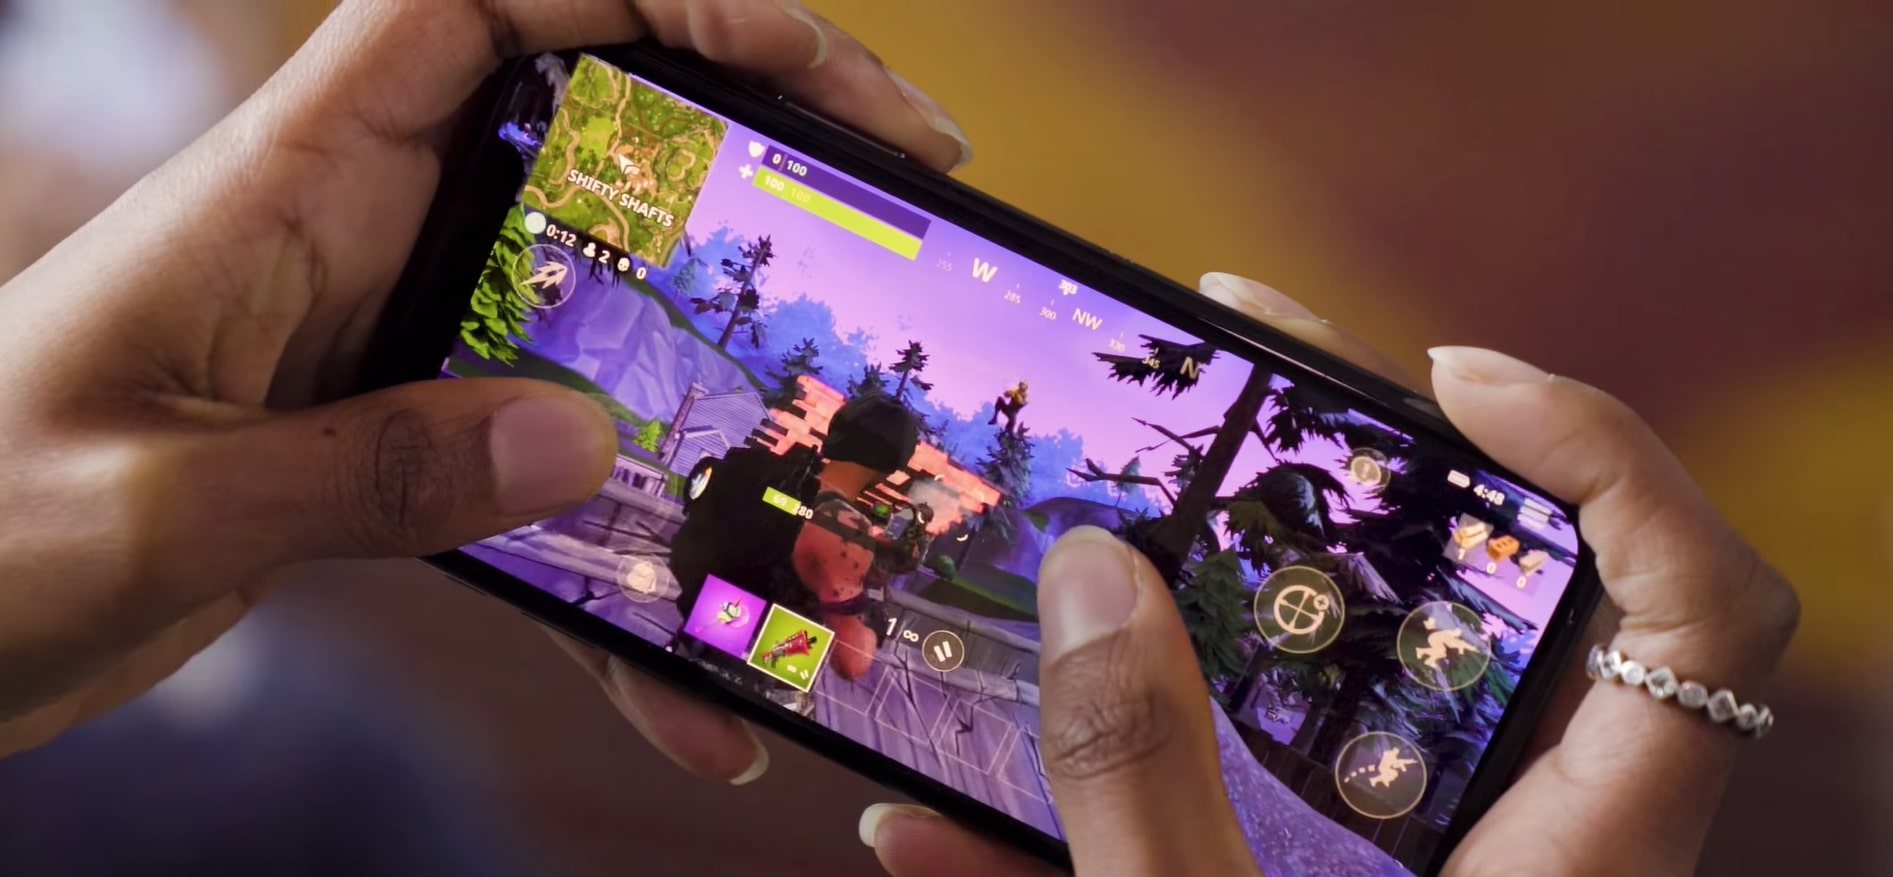 Apple says it made over $100 million in commission from Fortnite